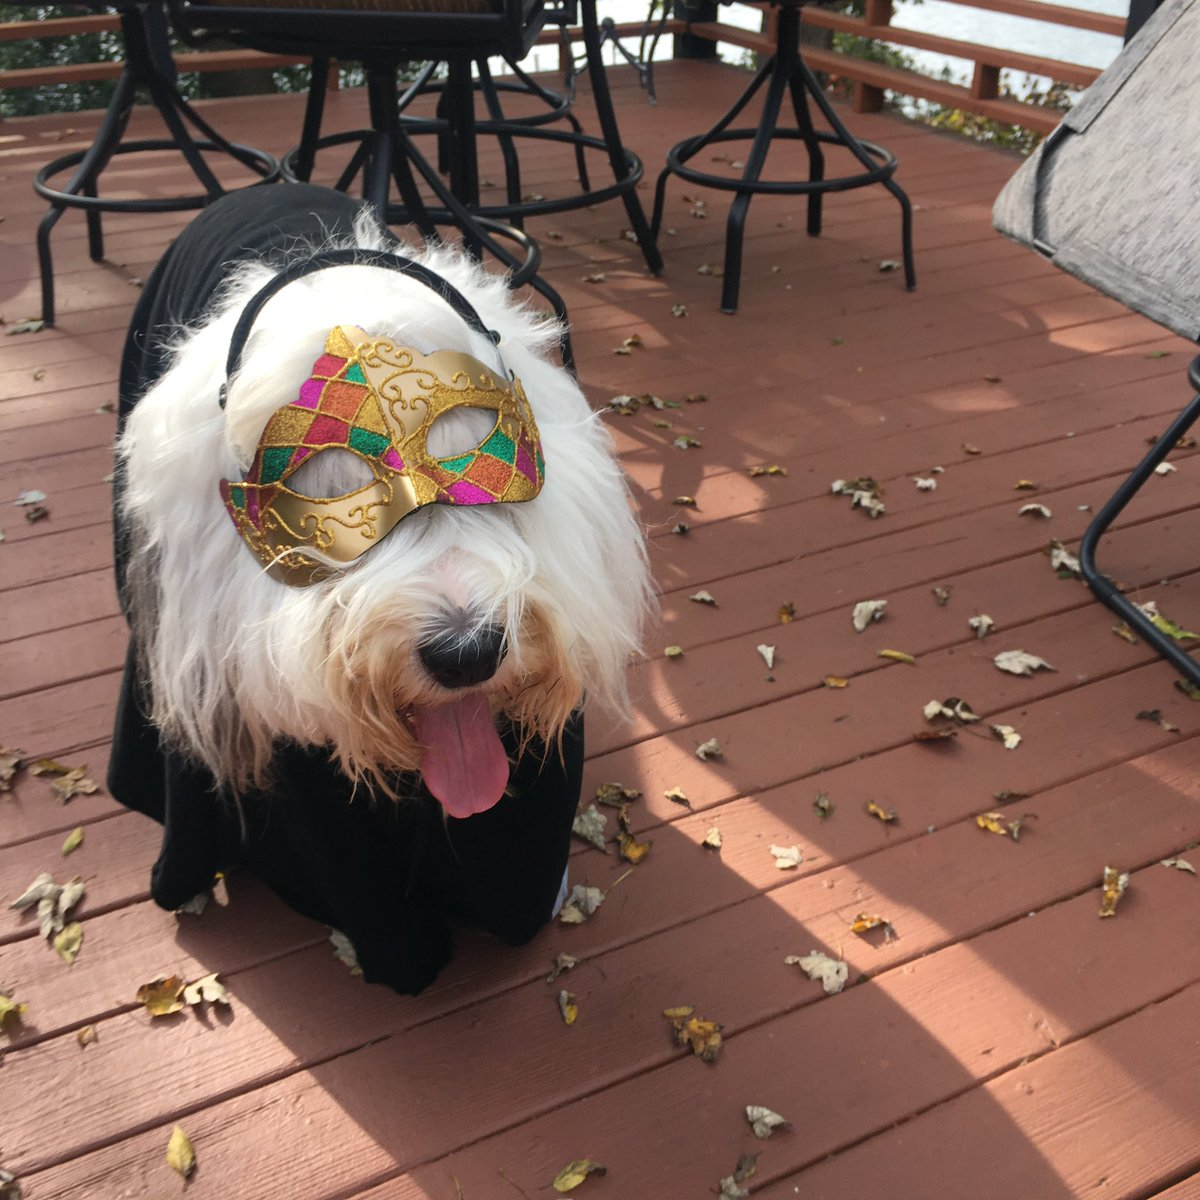 #NationalDogShow best in show is always going to be the Old English Sheepdog especially my Mackey!!